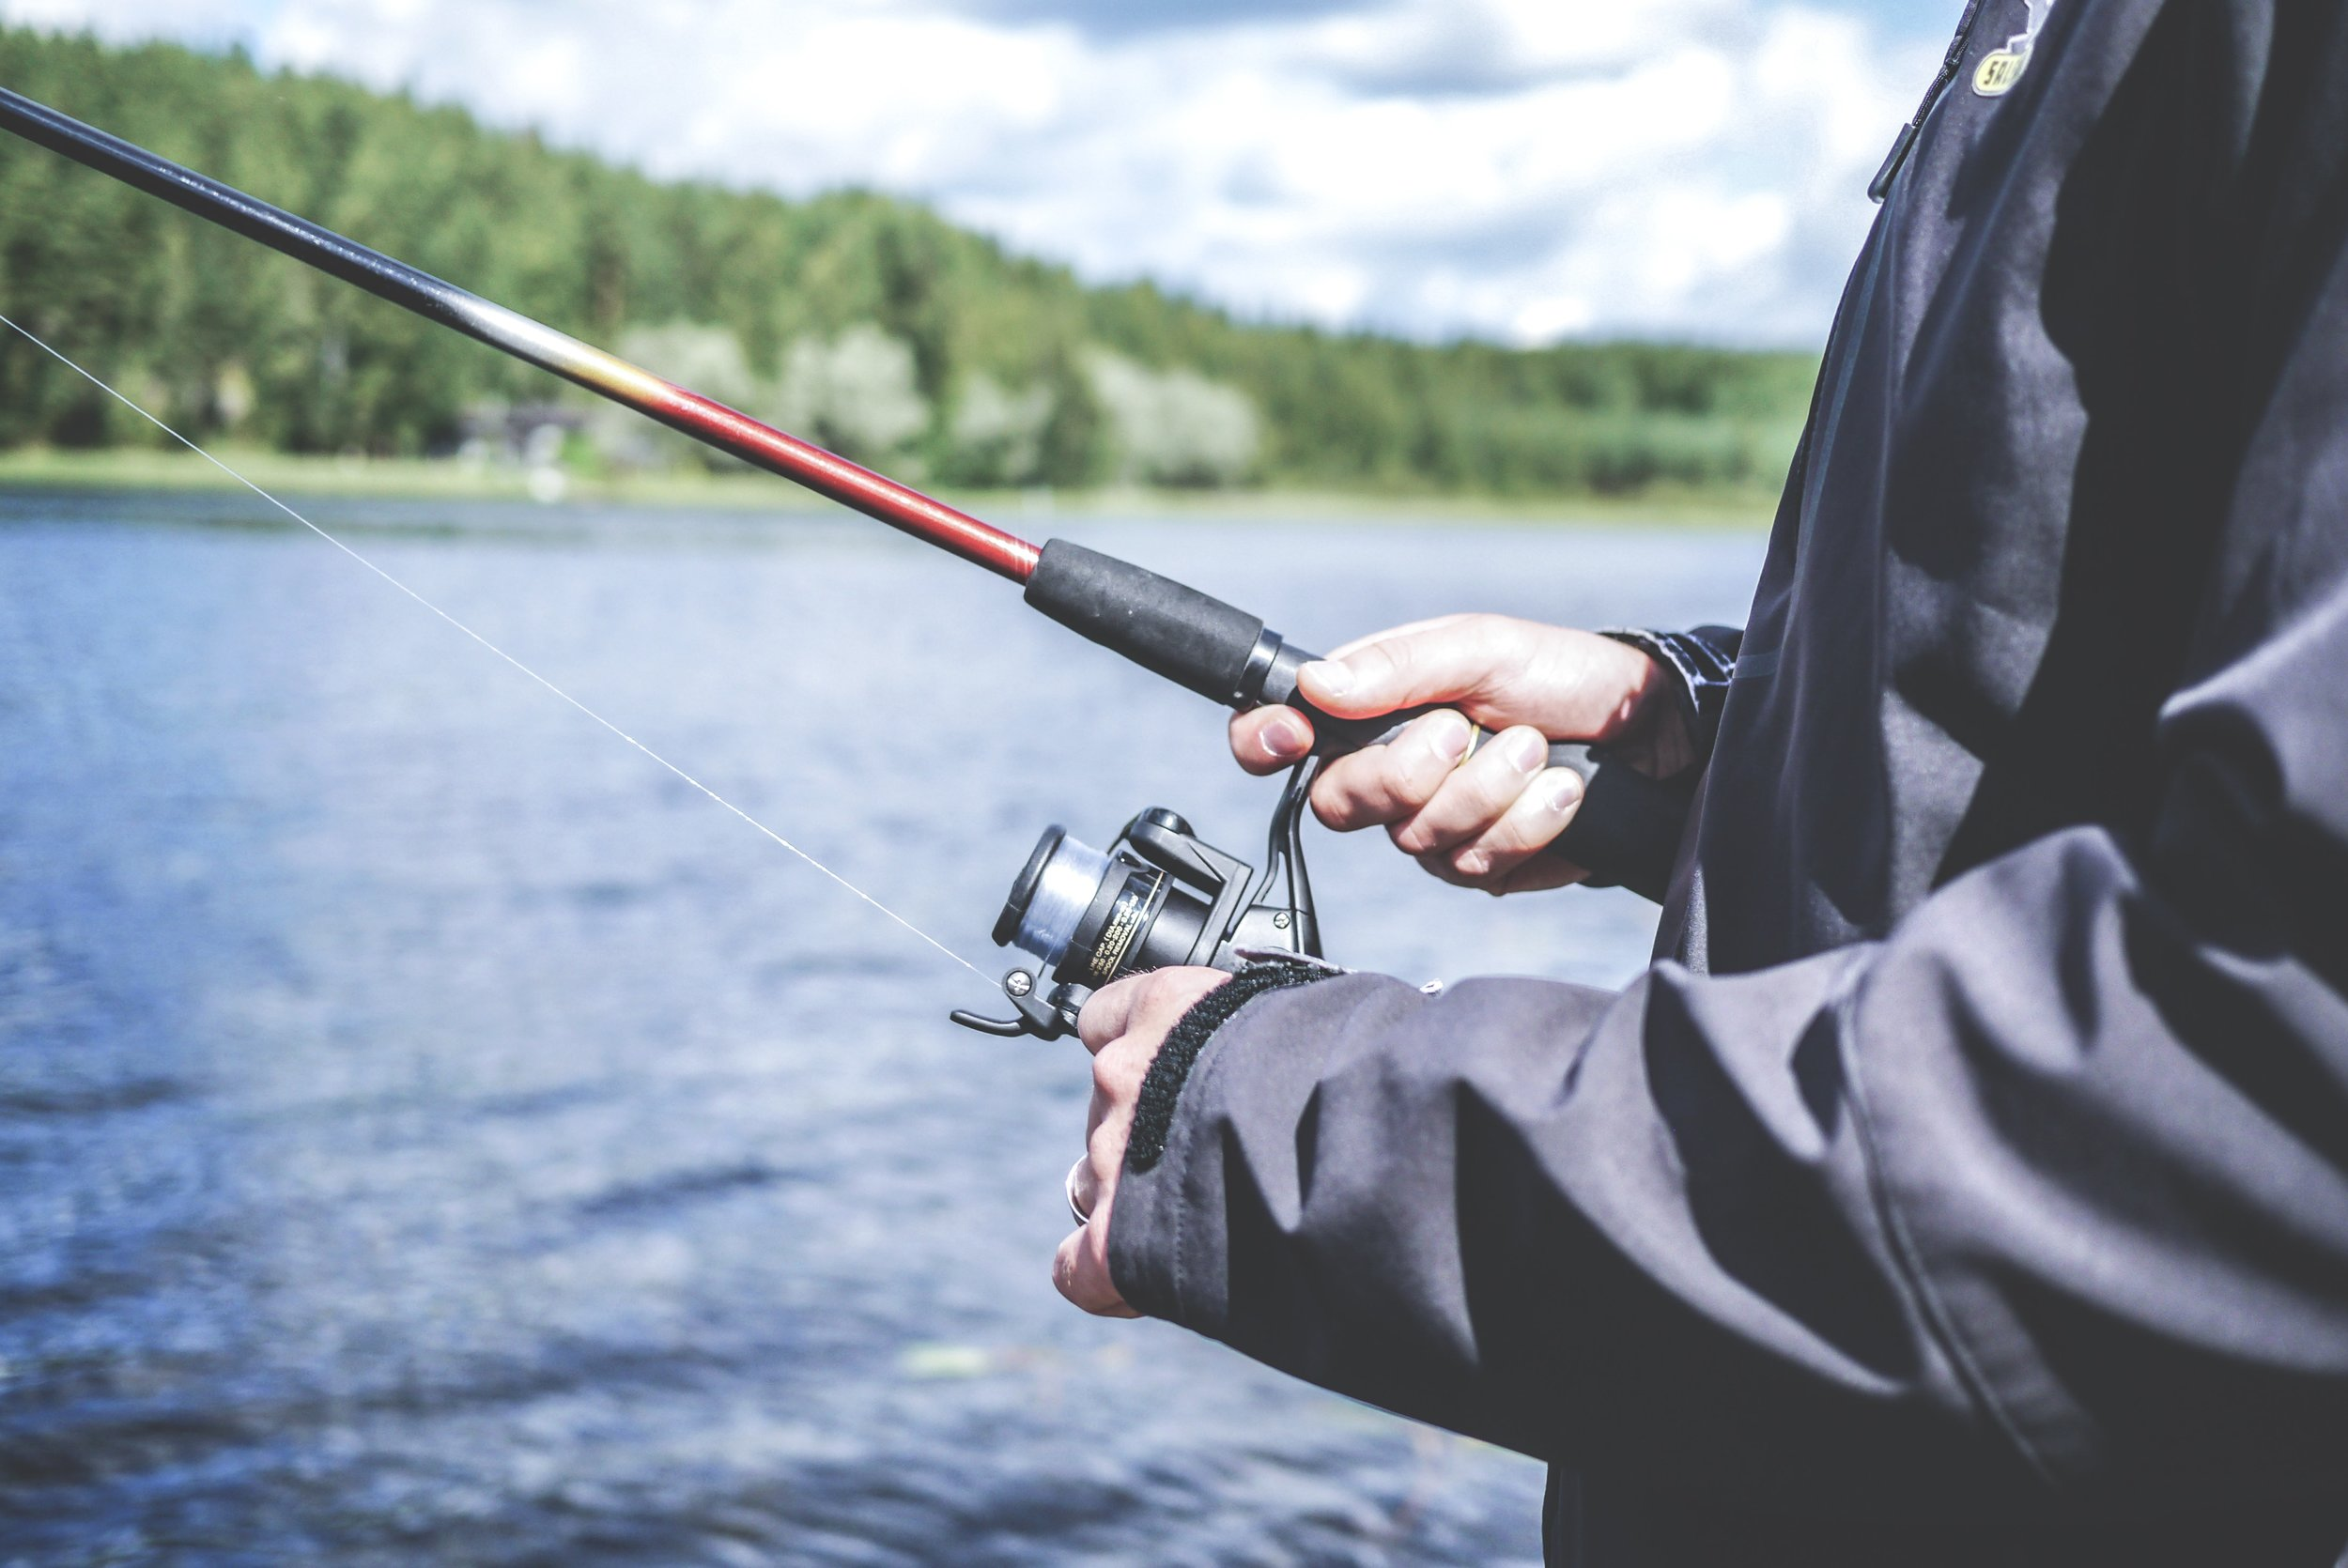 Fancy fishing? - Lower Helmsdale - Fishing Permit available from us 11th Jan - 30th SeptVisitors £20.83 per day + £4.13 VAT = £25Weekly £83.33 per day + £16.67 VAT = £100Pensioners - Half prices, Children 16 and under - Free